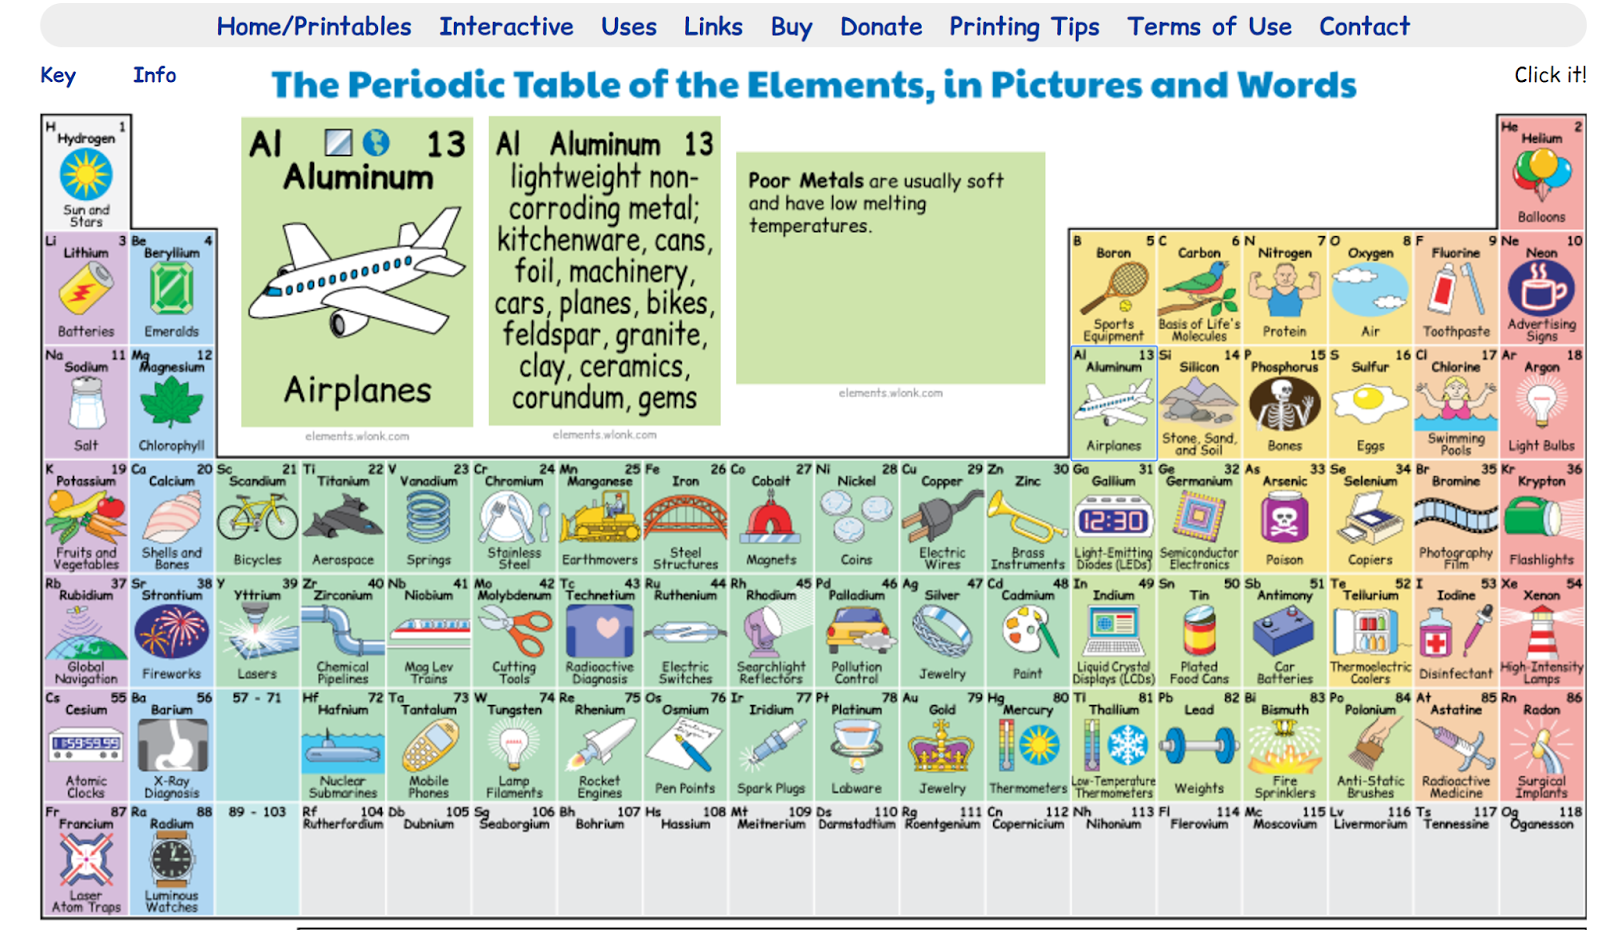 Free technology for teachers the periodic table in pictures and words the periodic table of elements in pictures and words could be a great resource for middle school science classrooms it also provides a nice model for an gamestrikefo Choice Image